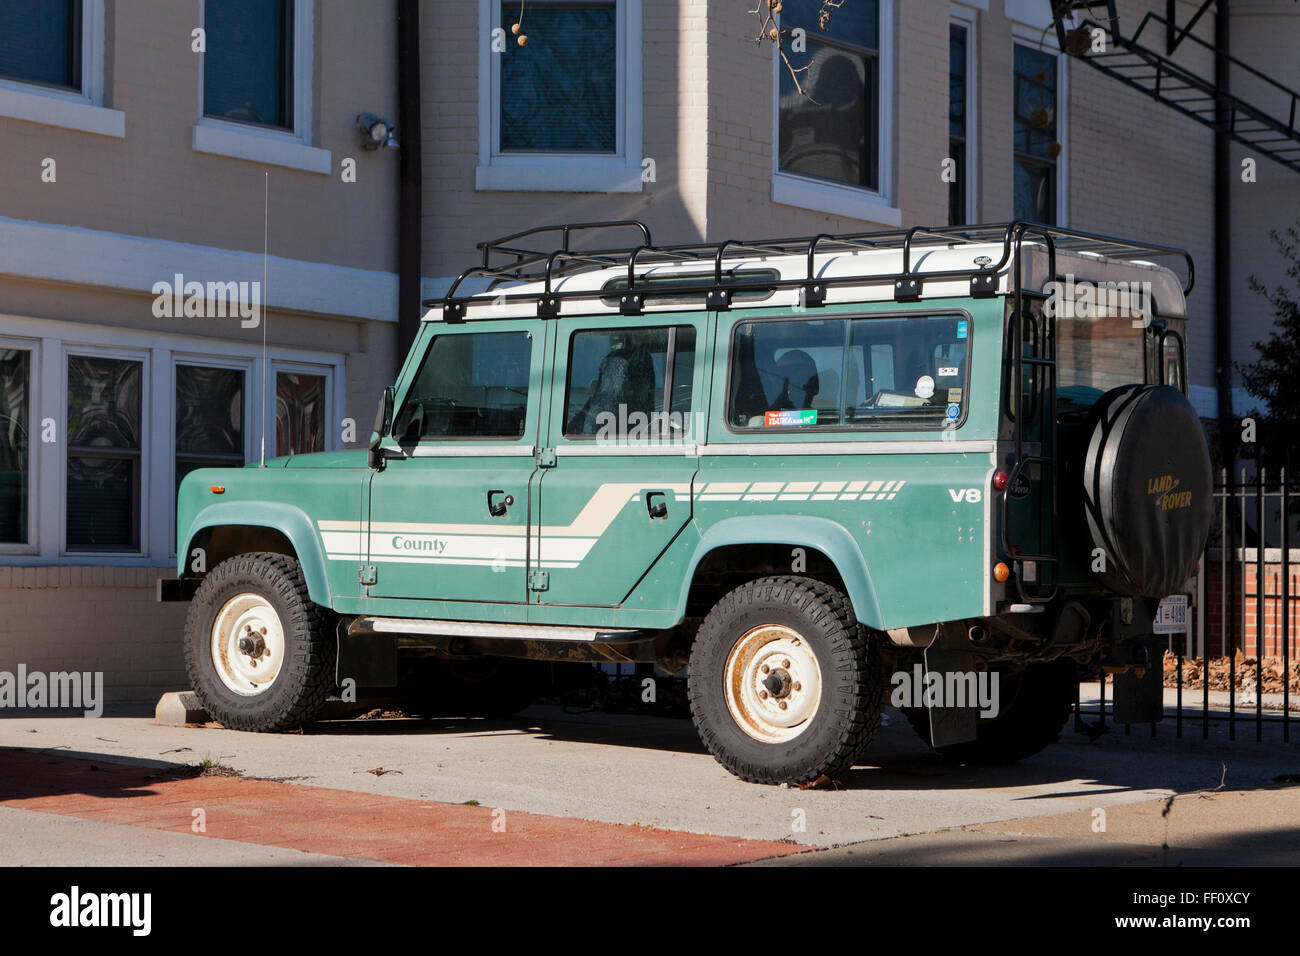 Land Rover Defender Usa >> 1985 Land Rover Defender 110 County truck with roof rack - USA Stock Photo: 95292427 - Alamy